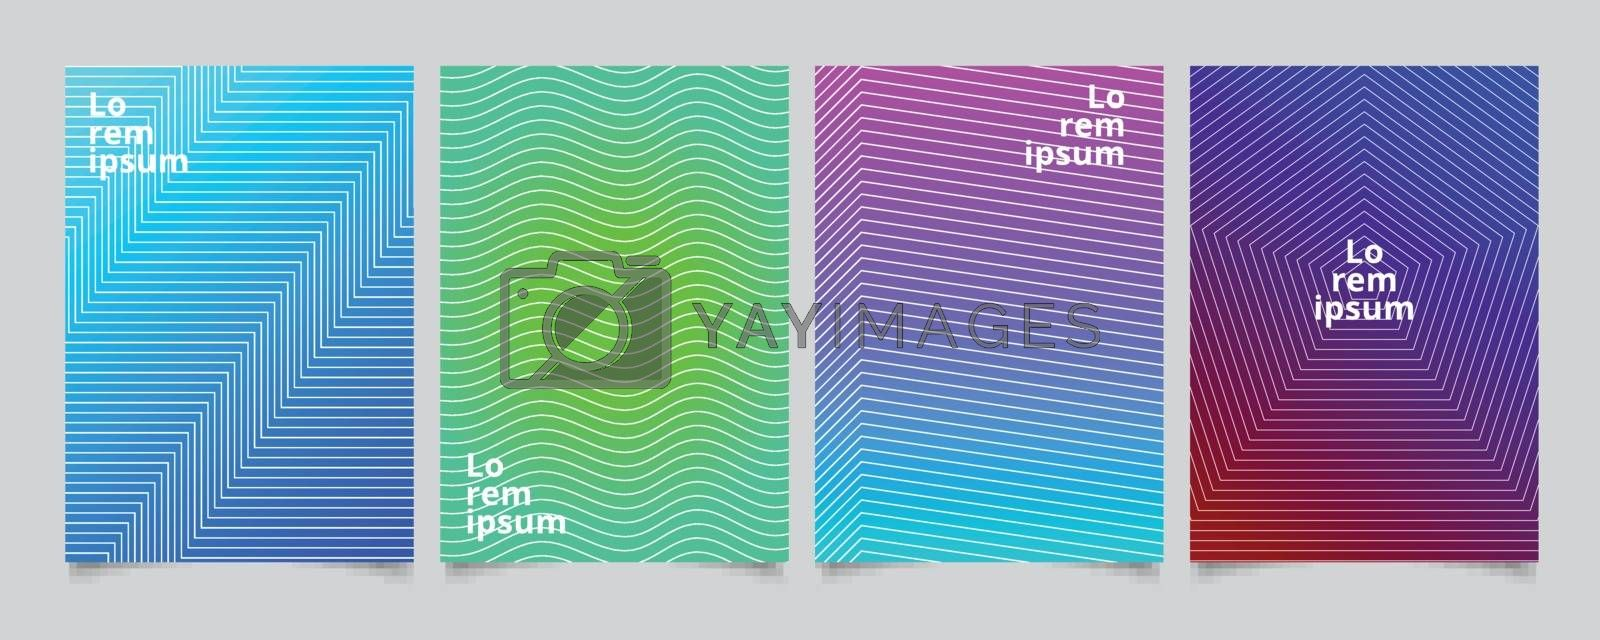 Set template minimal covers design, gradient colorful halftone with lines pattern background. Vector illustration